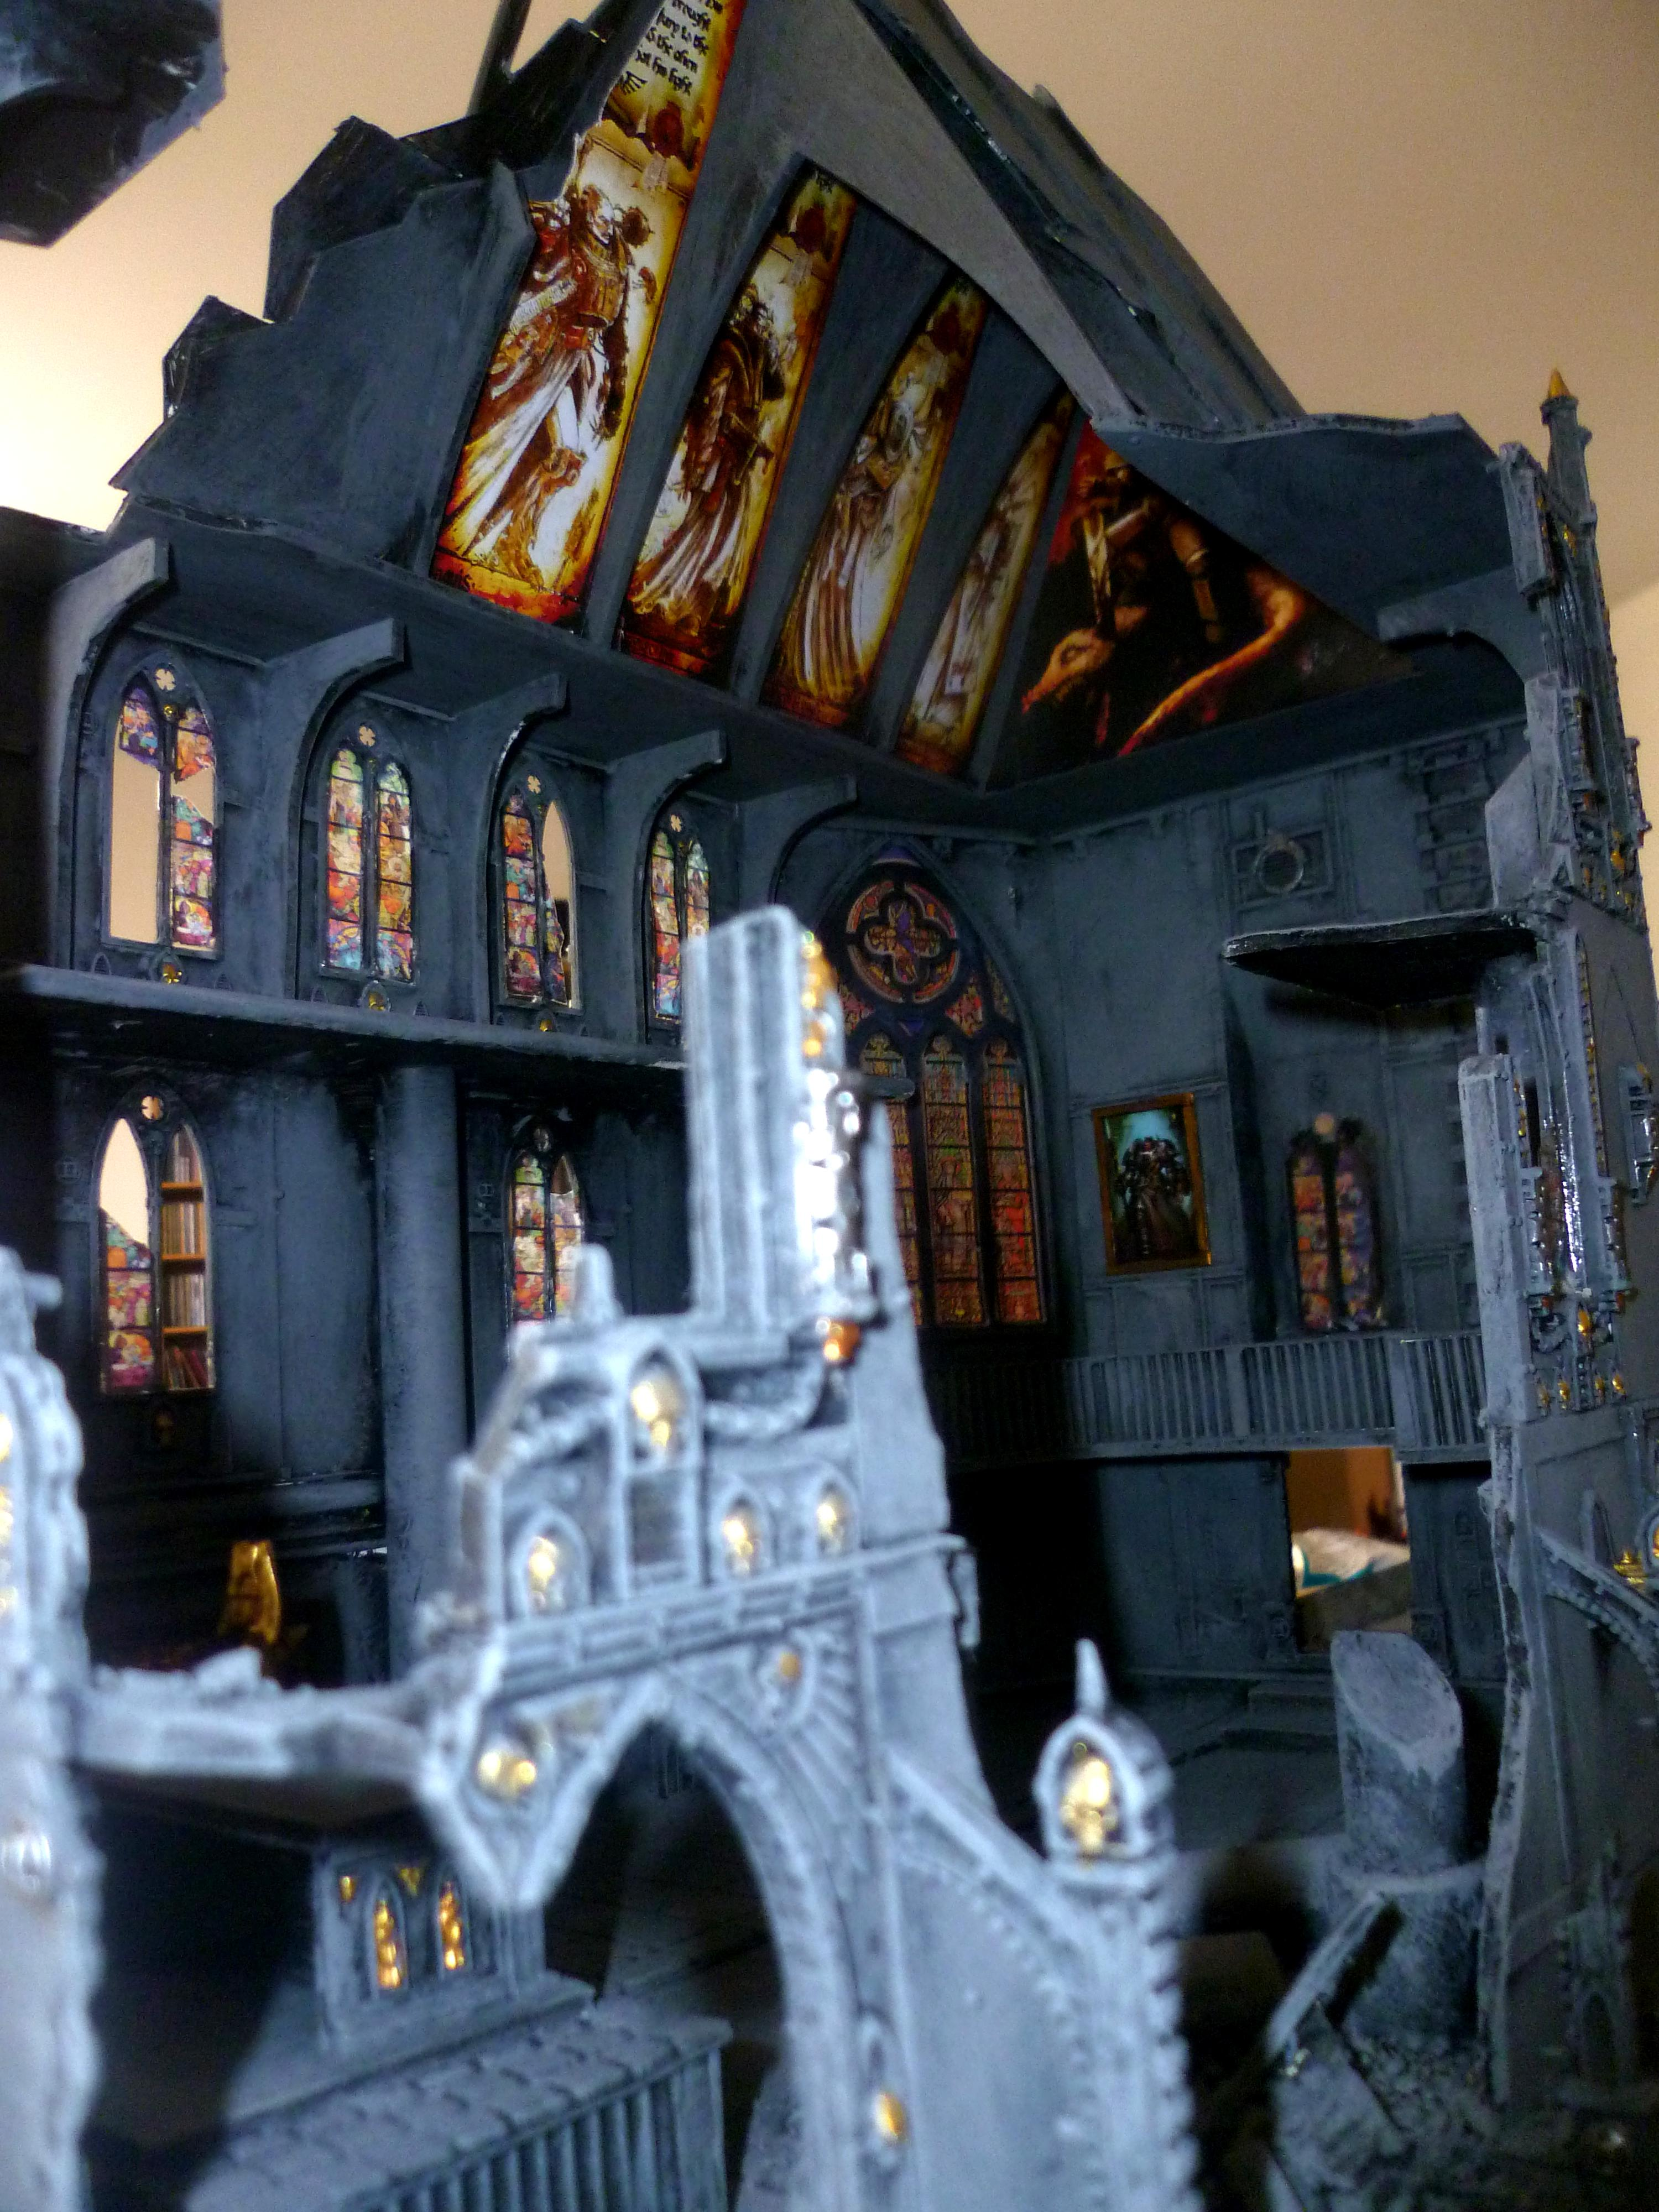 Murals, Ruins, Stained Glass, Terrain